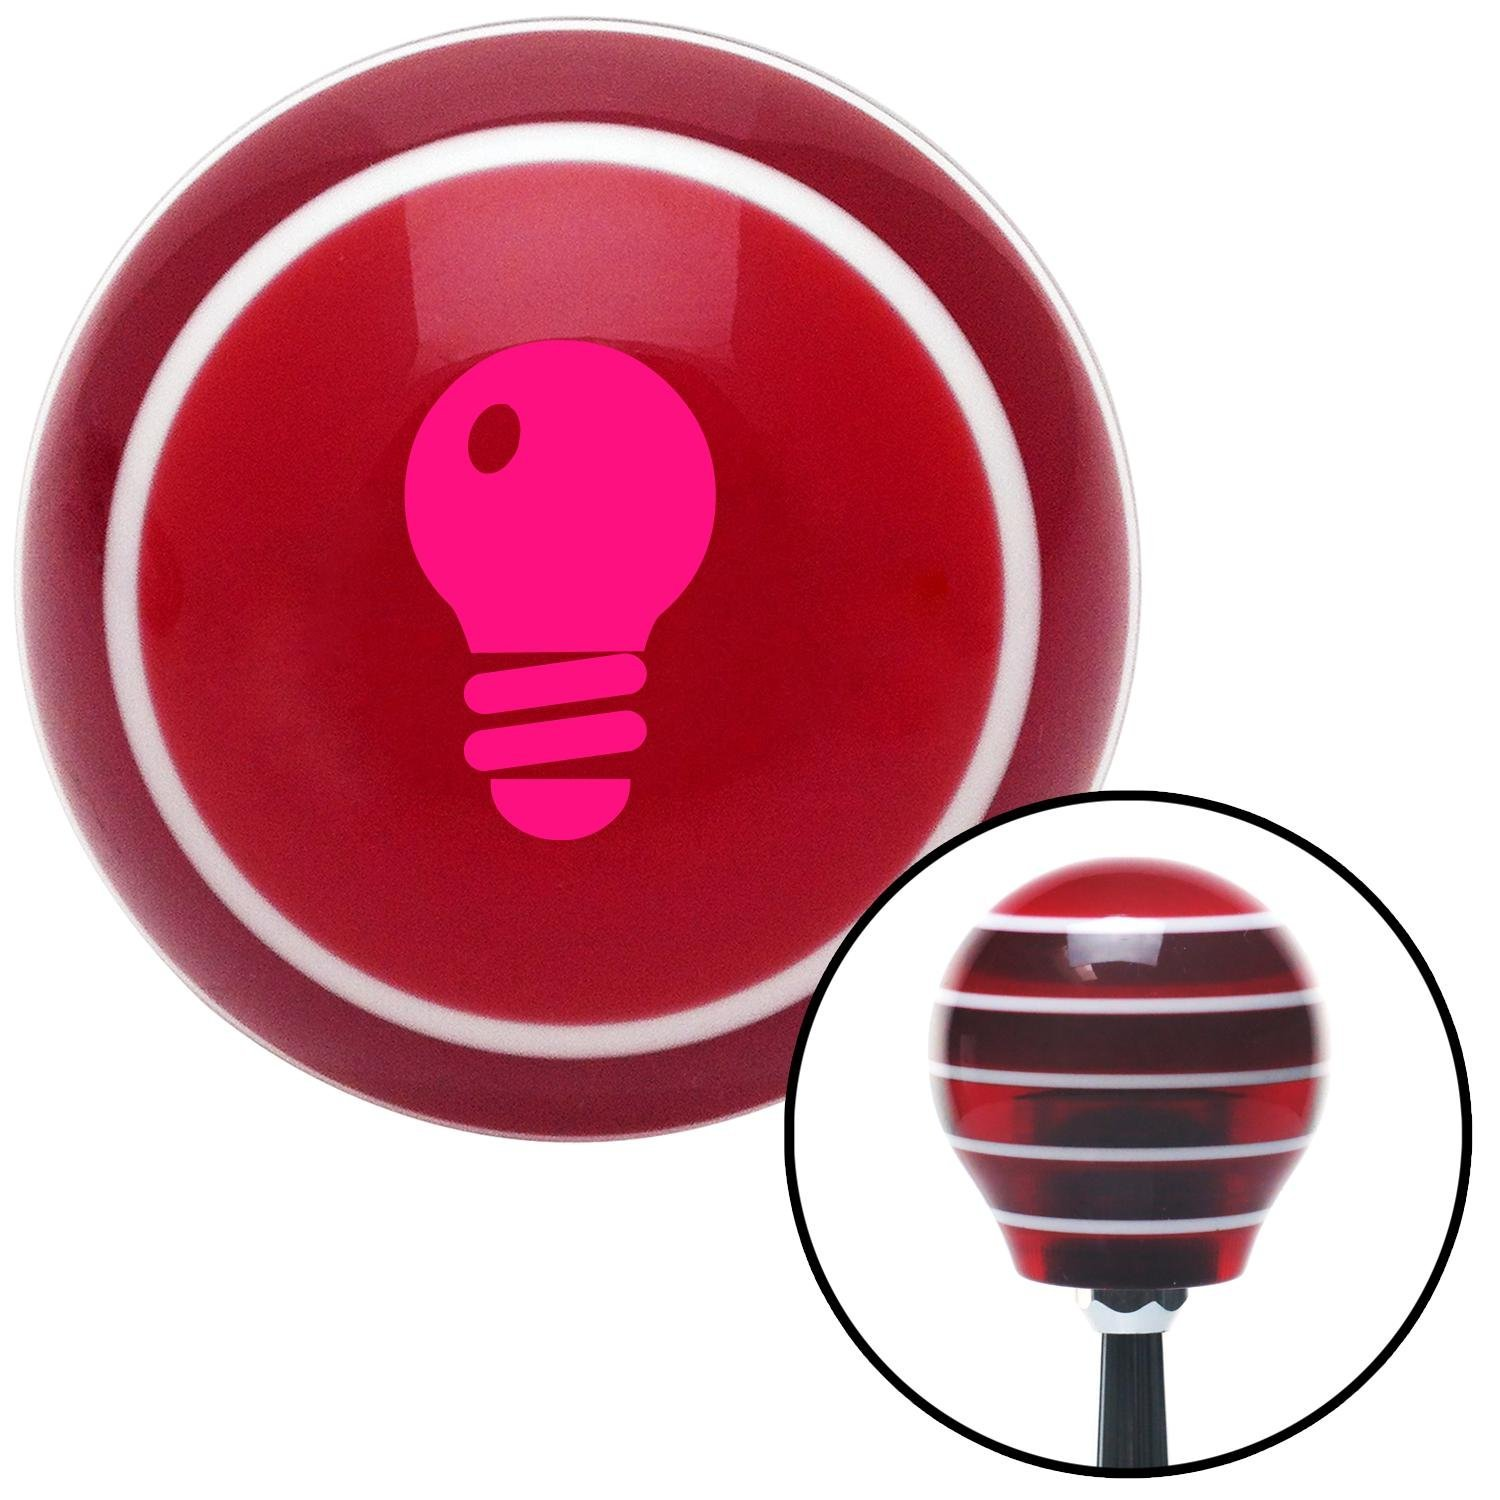 American Shifter 117141 Red Stripe Shift Knob with M16 x 1.5 Insert Pink Light Bulb